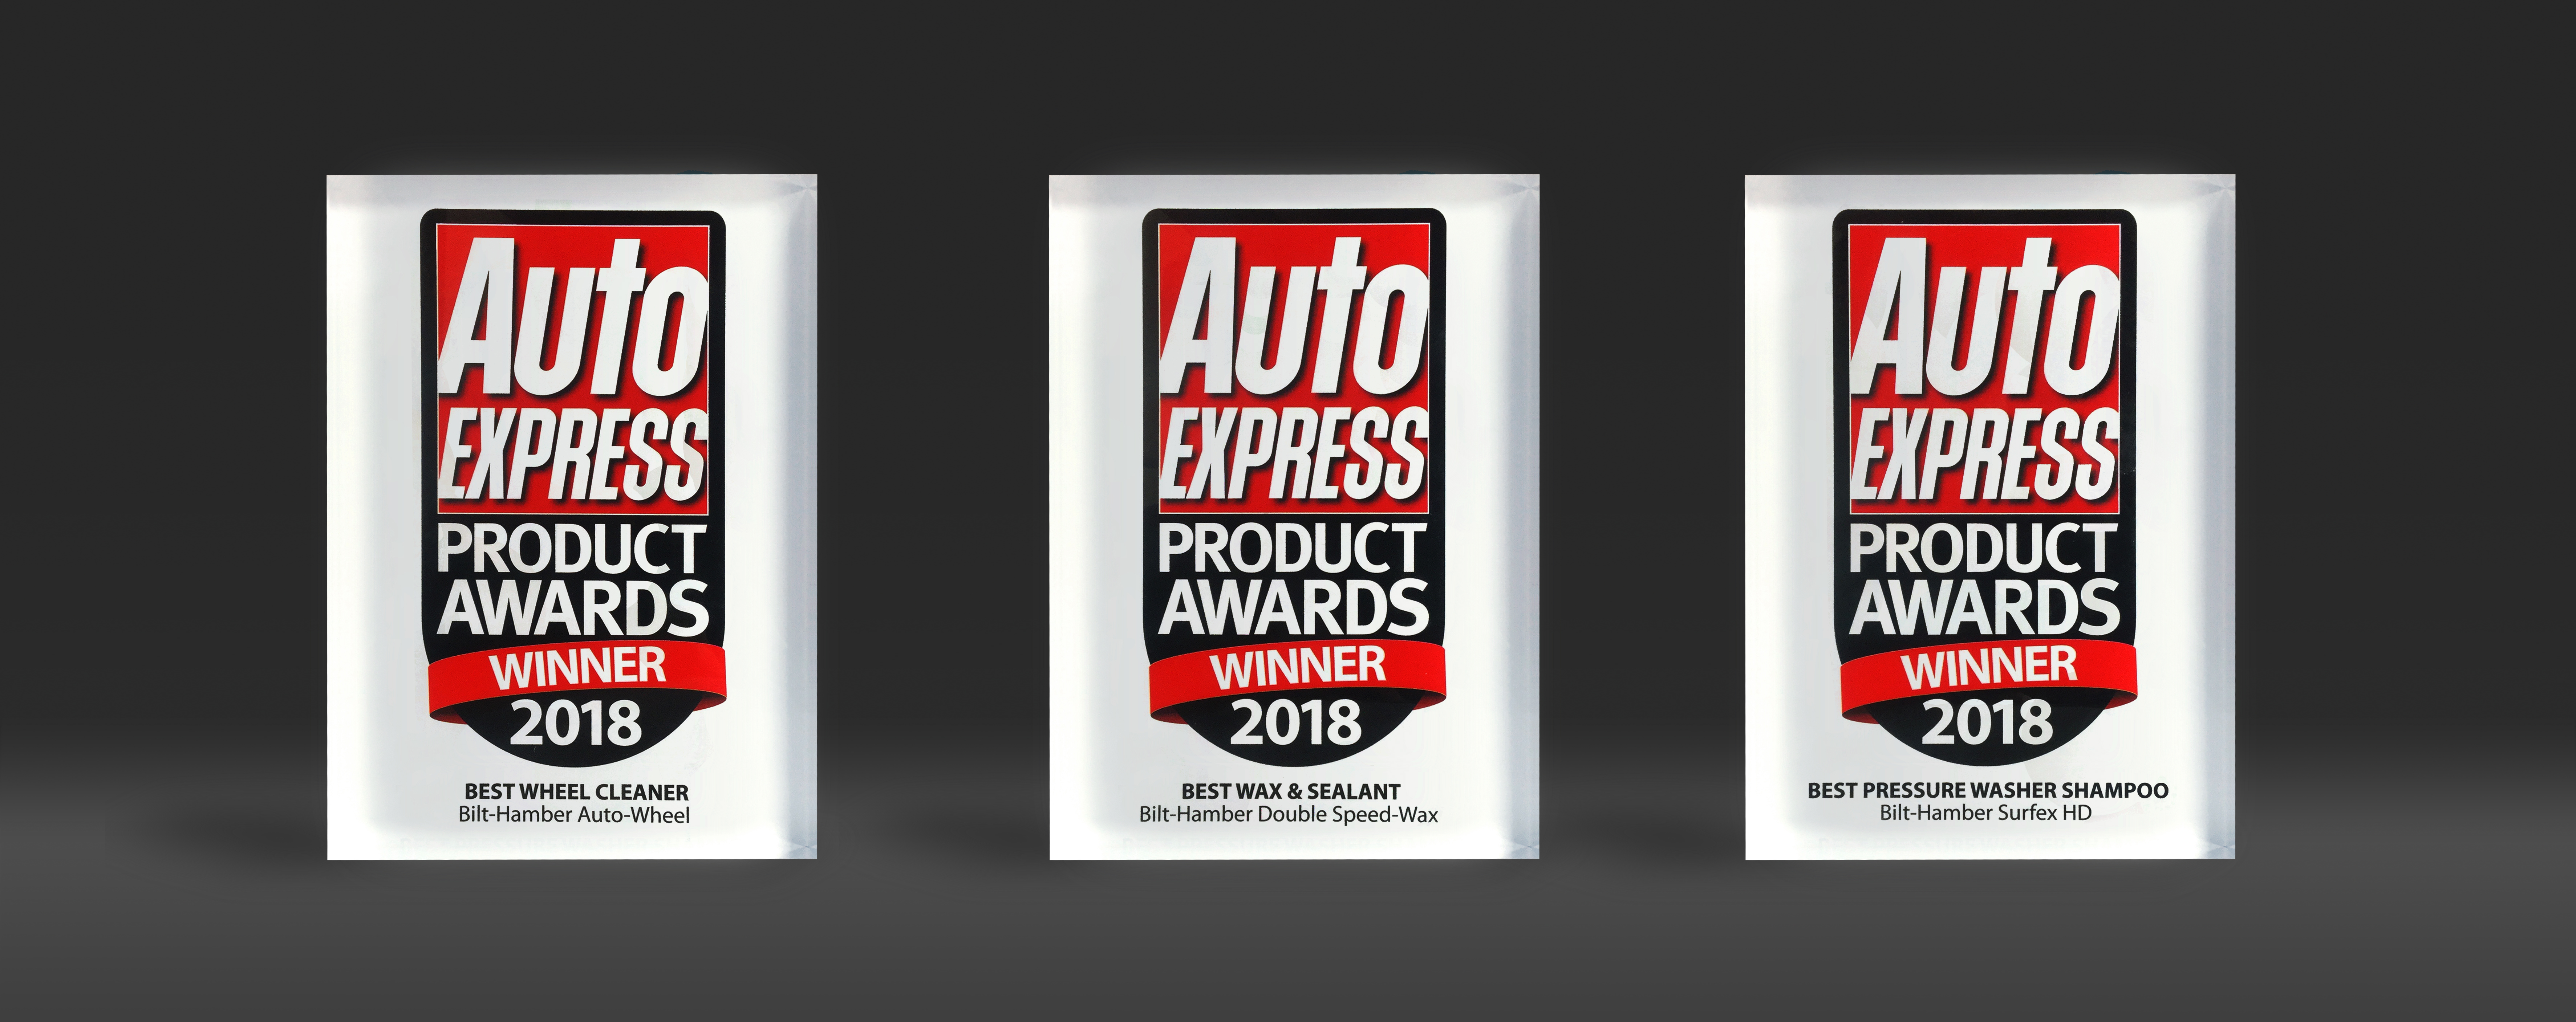 Image of three award trophies for the auto express magazine 2018 product awards. Best wax and sealant, best wheel cleaner, best car shampoo.